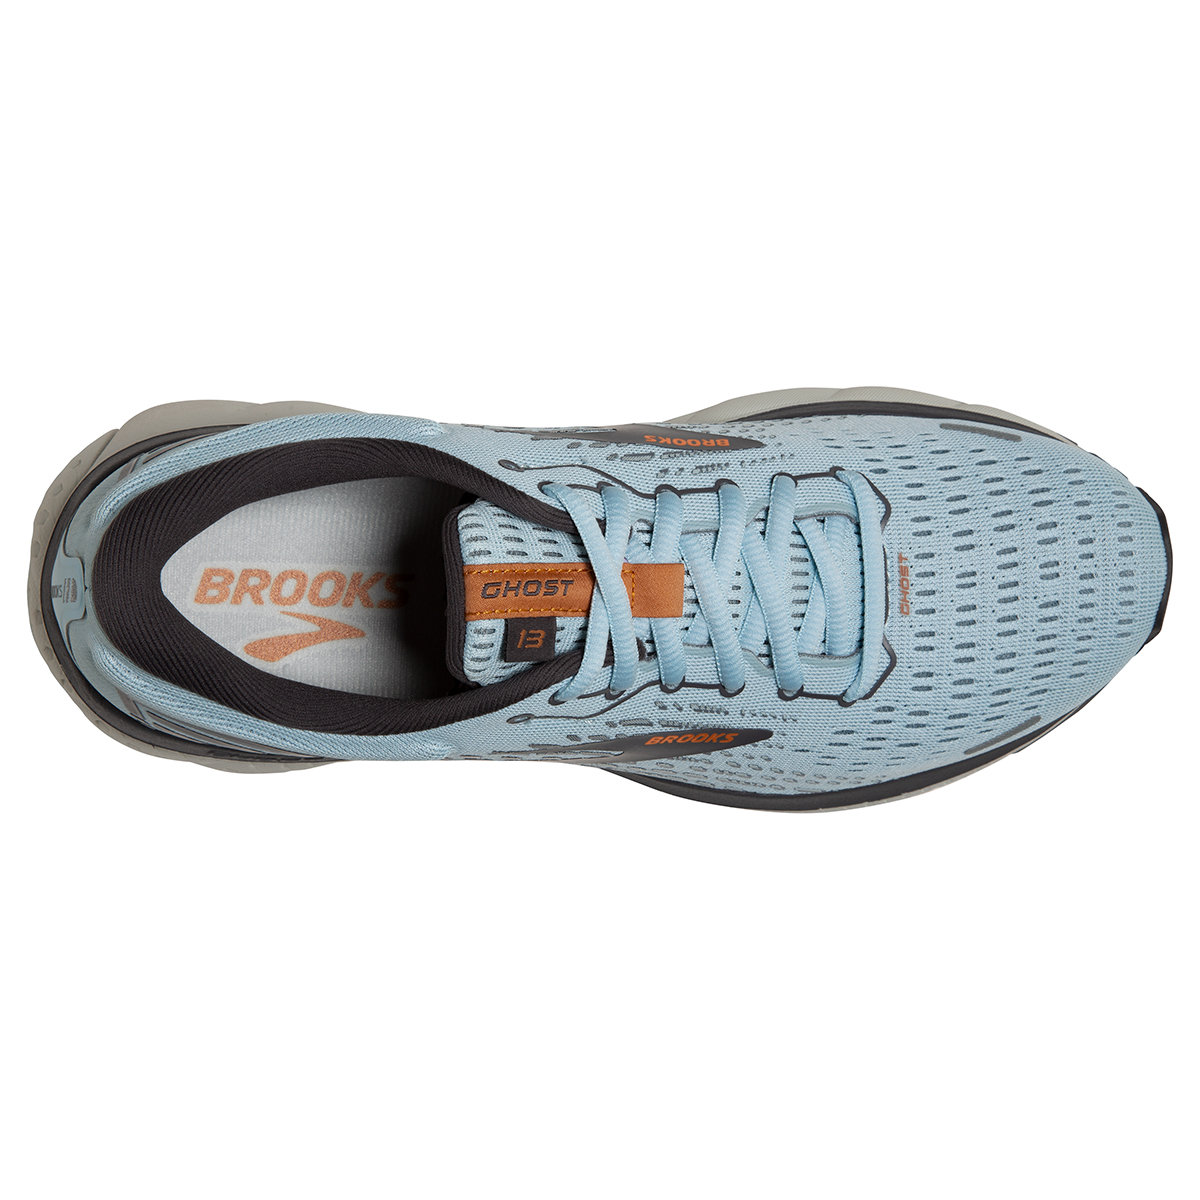 Women's Brooks Ghost 13 Running Shoe - Color: Light Blue/Black - Size: 5 - Width: Regular, Light Blue/Black, large, image 2